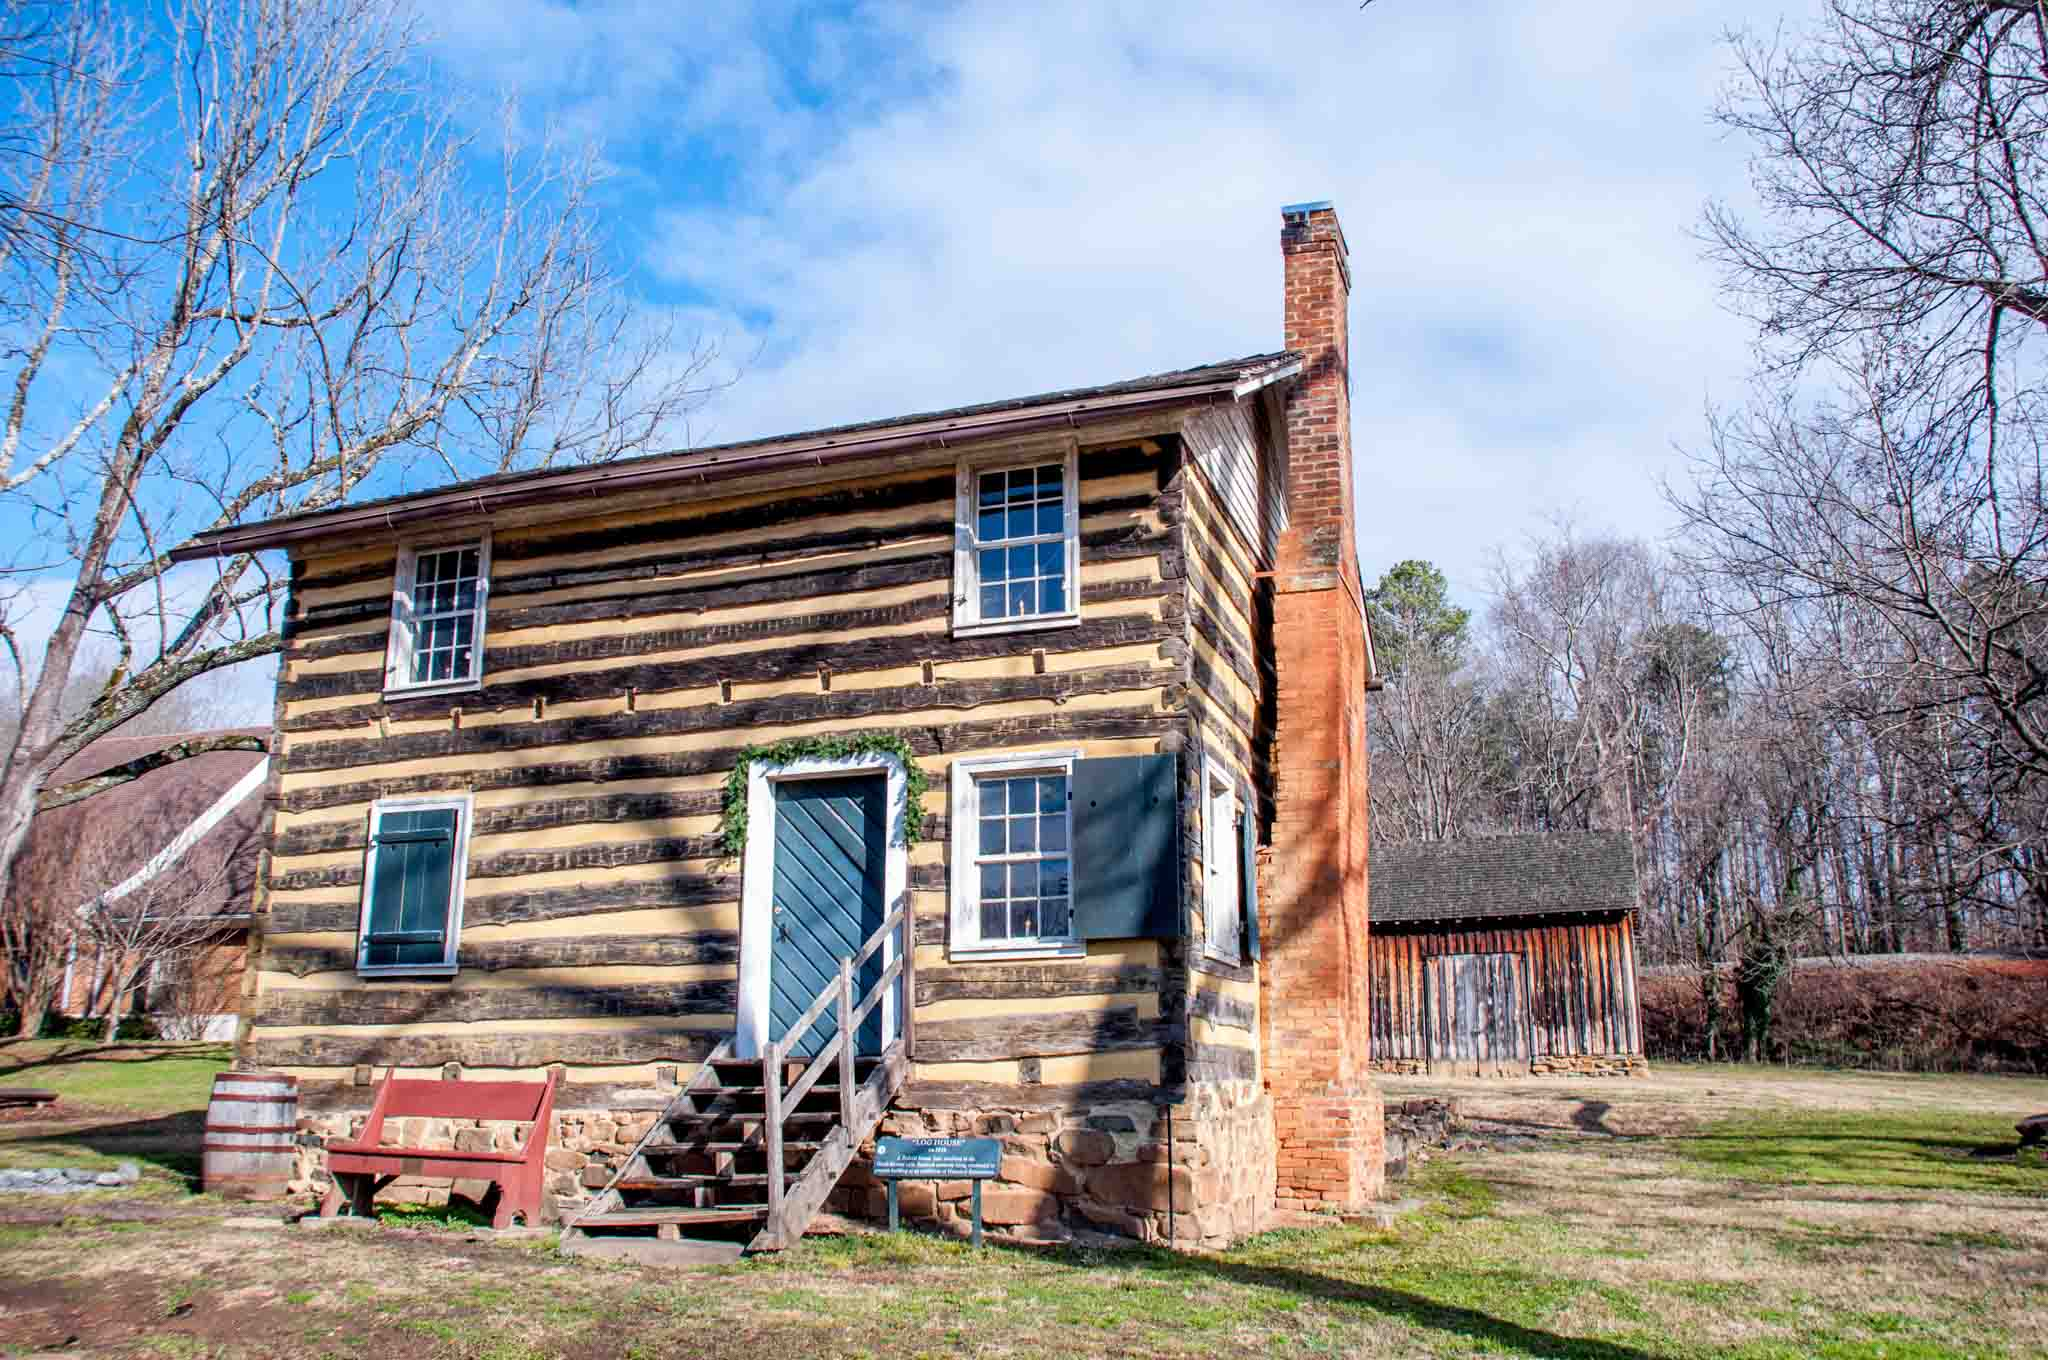 Log house with four windows at the Bethabara Historic District